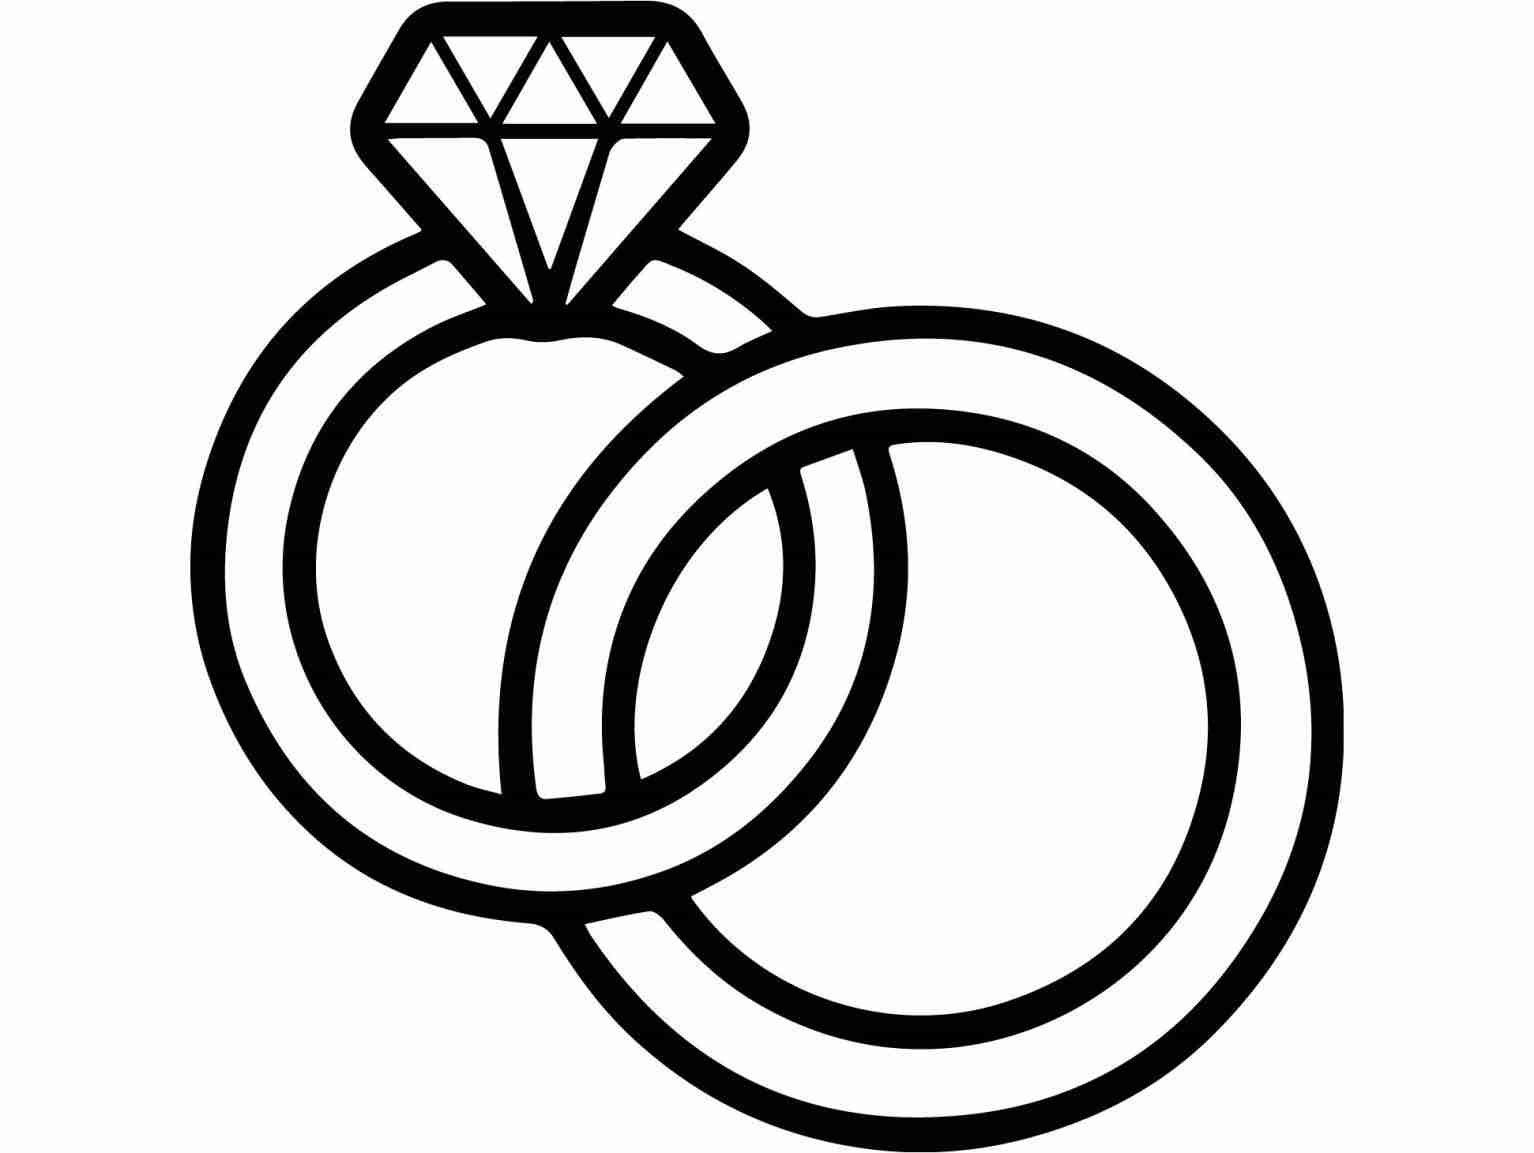 Drawing Wedding Rings Linked Together Wedding Ring Drawing Wedding Ring Clipart Wedding Rings Sets Gold